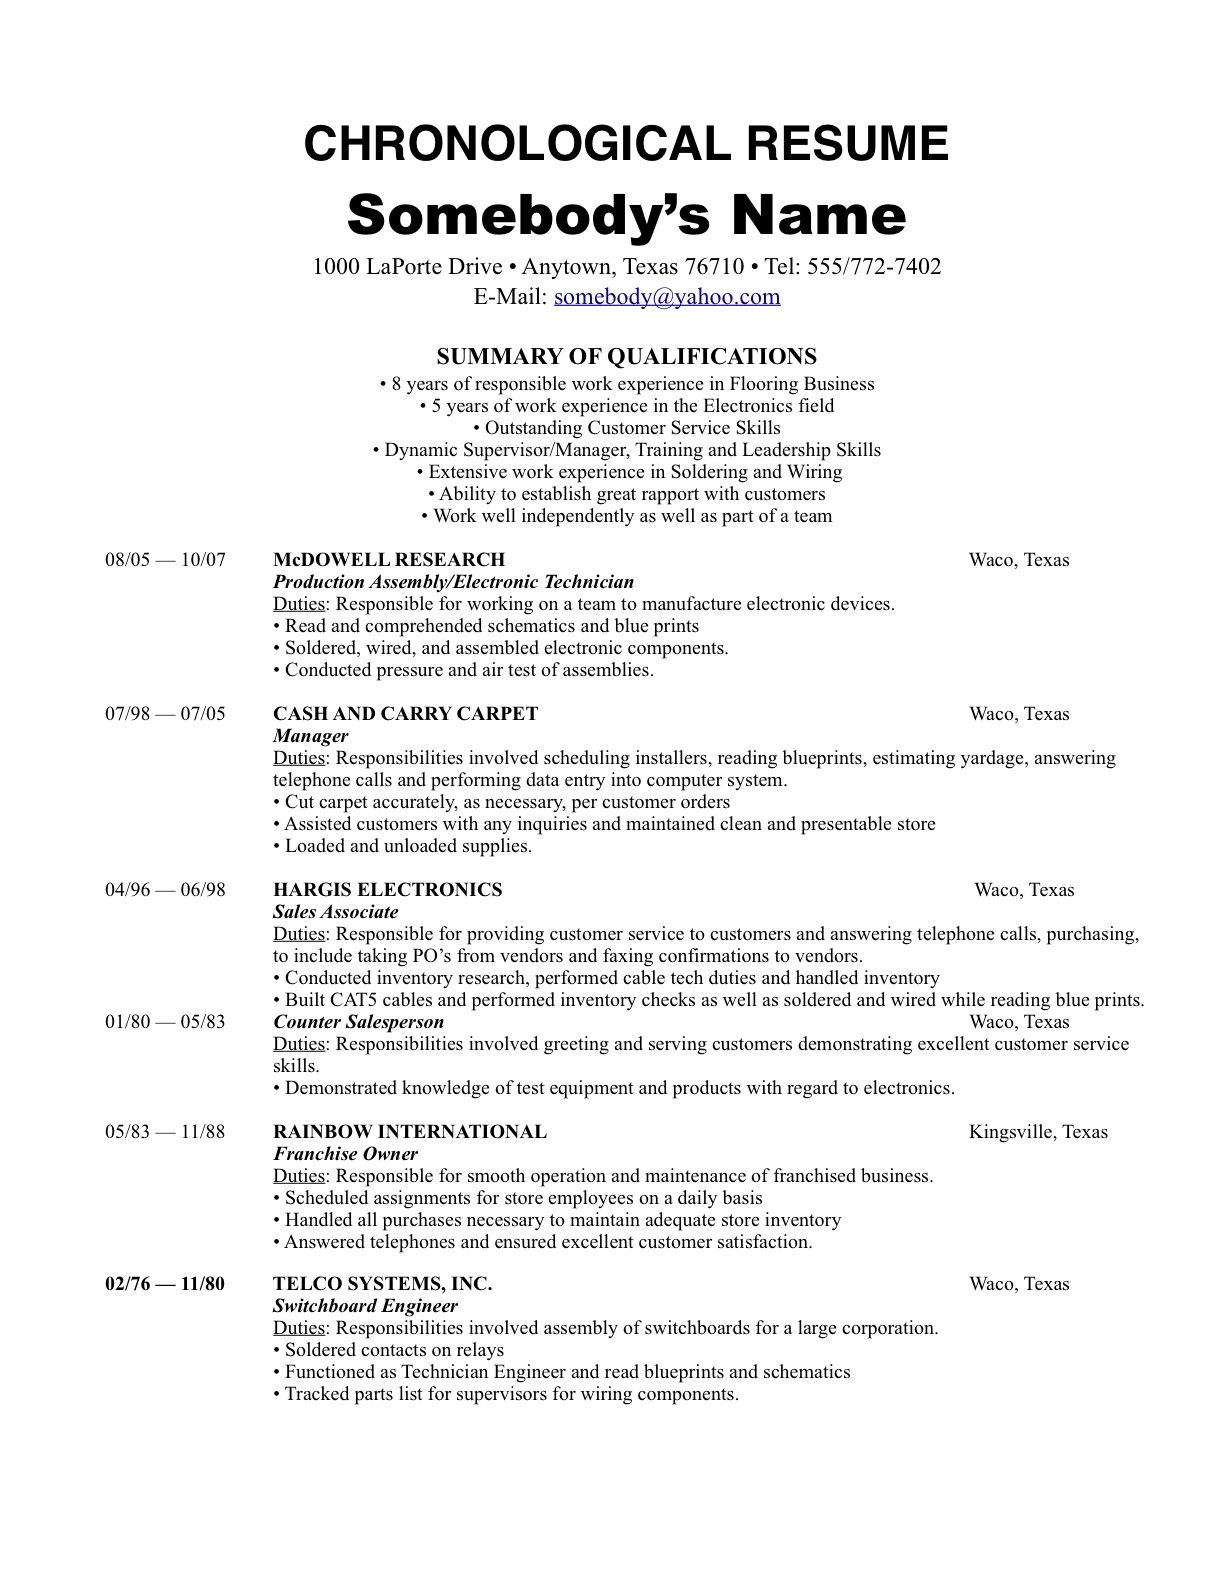 resume What Is A Chronological Resume chronological order resume example dc0364f86 the most reverse example